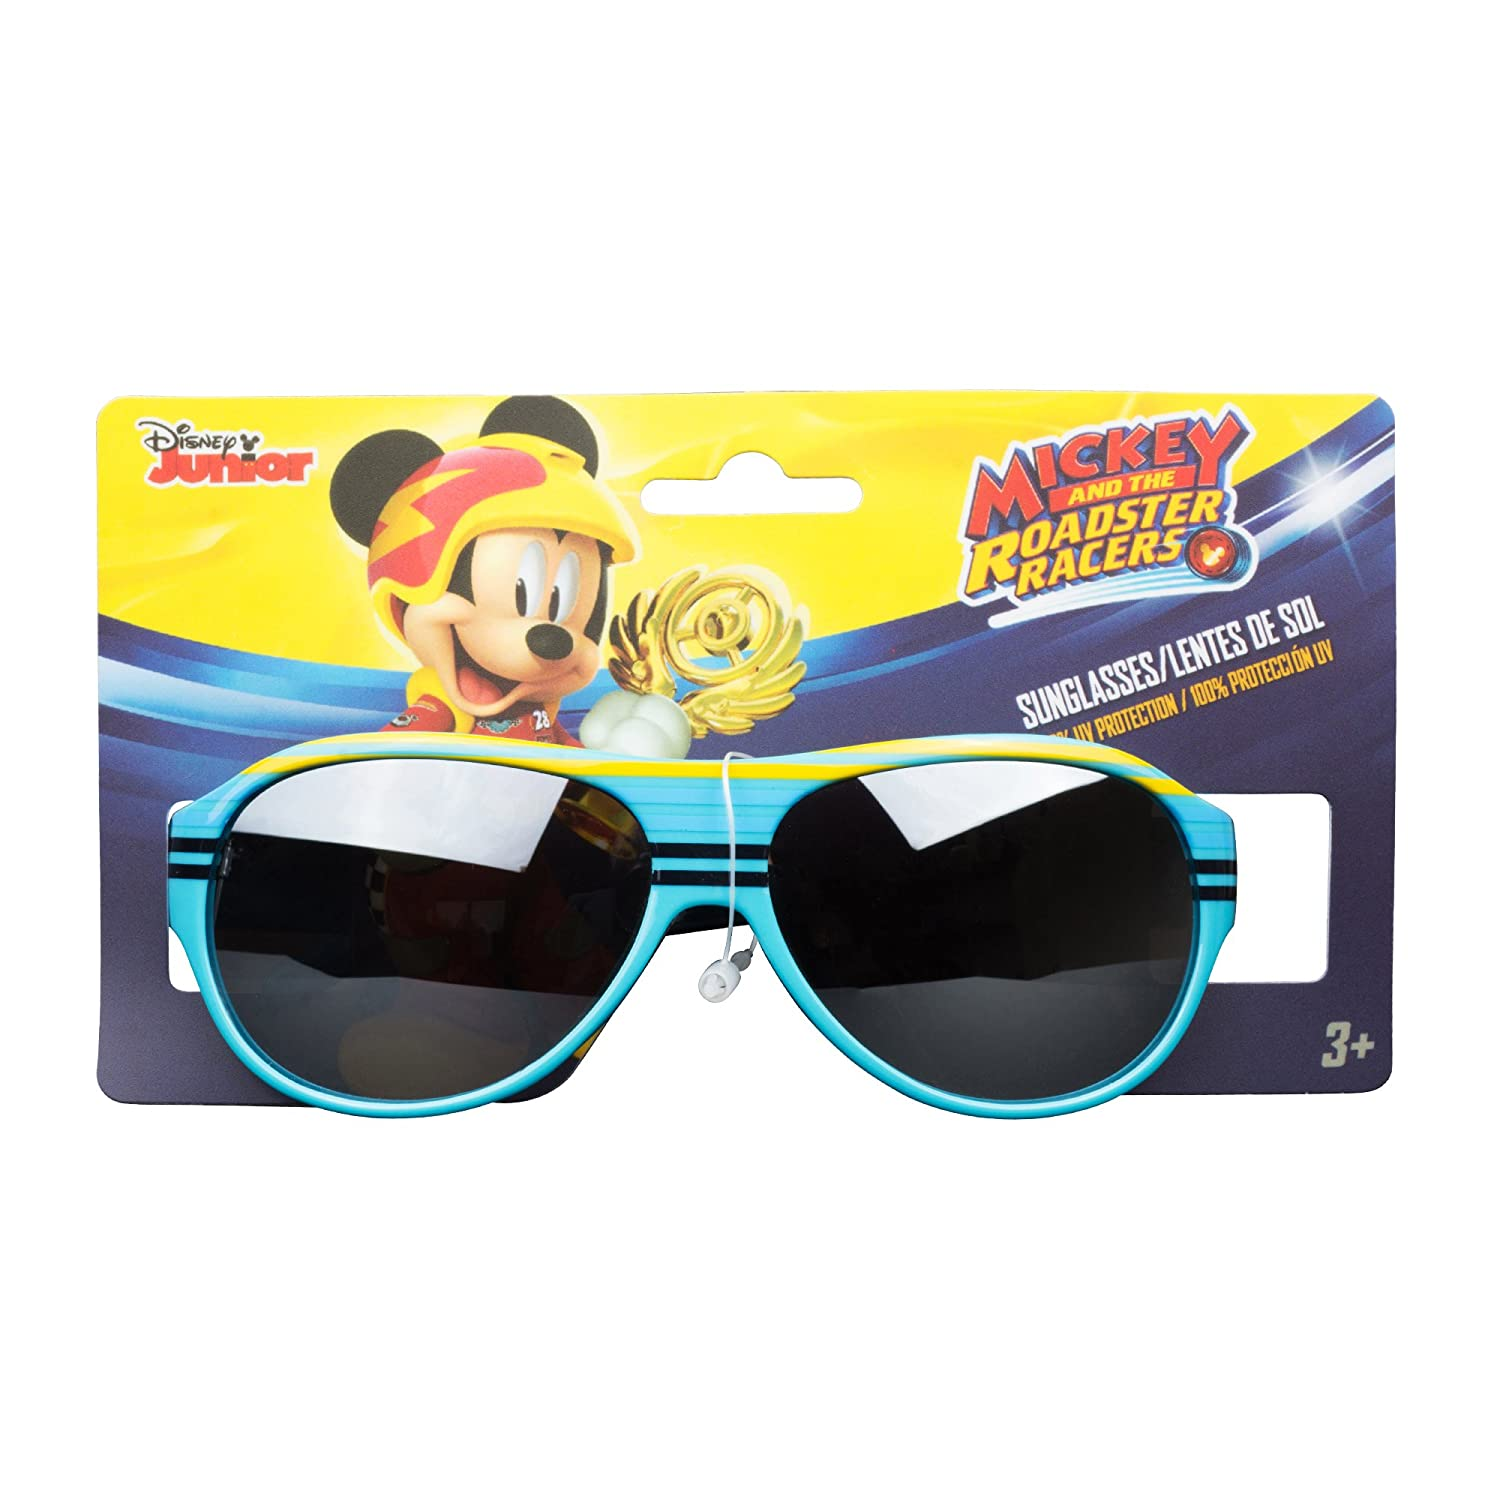 KIDS SUNGLASSES- BOYS 100% UV SUNGLASSES, CARS, MICKEY PAW PATROL, HOT WHEELS, PJ MASK CAR021-NVY-OS